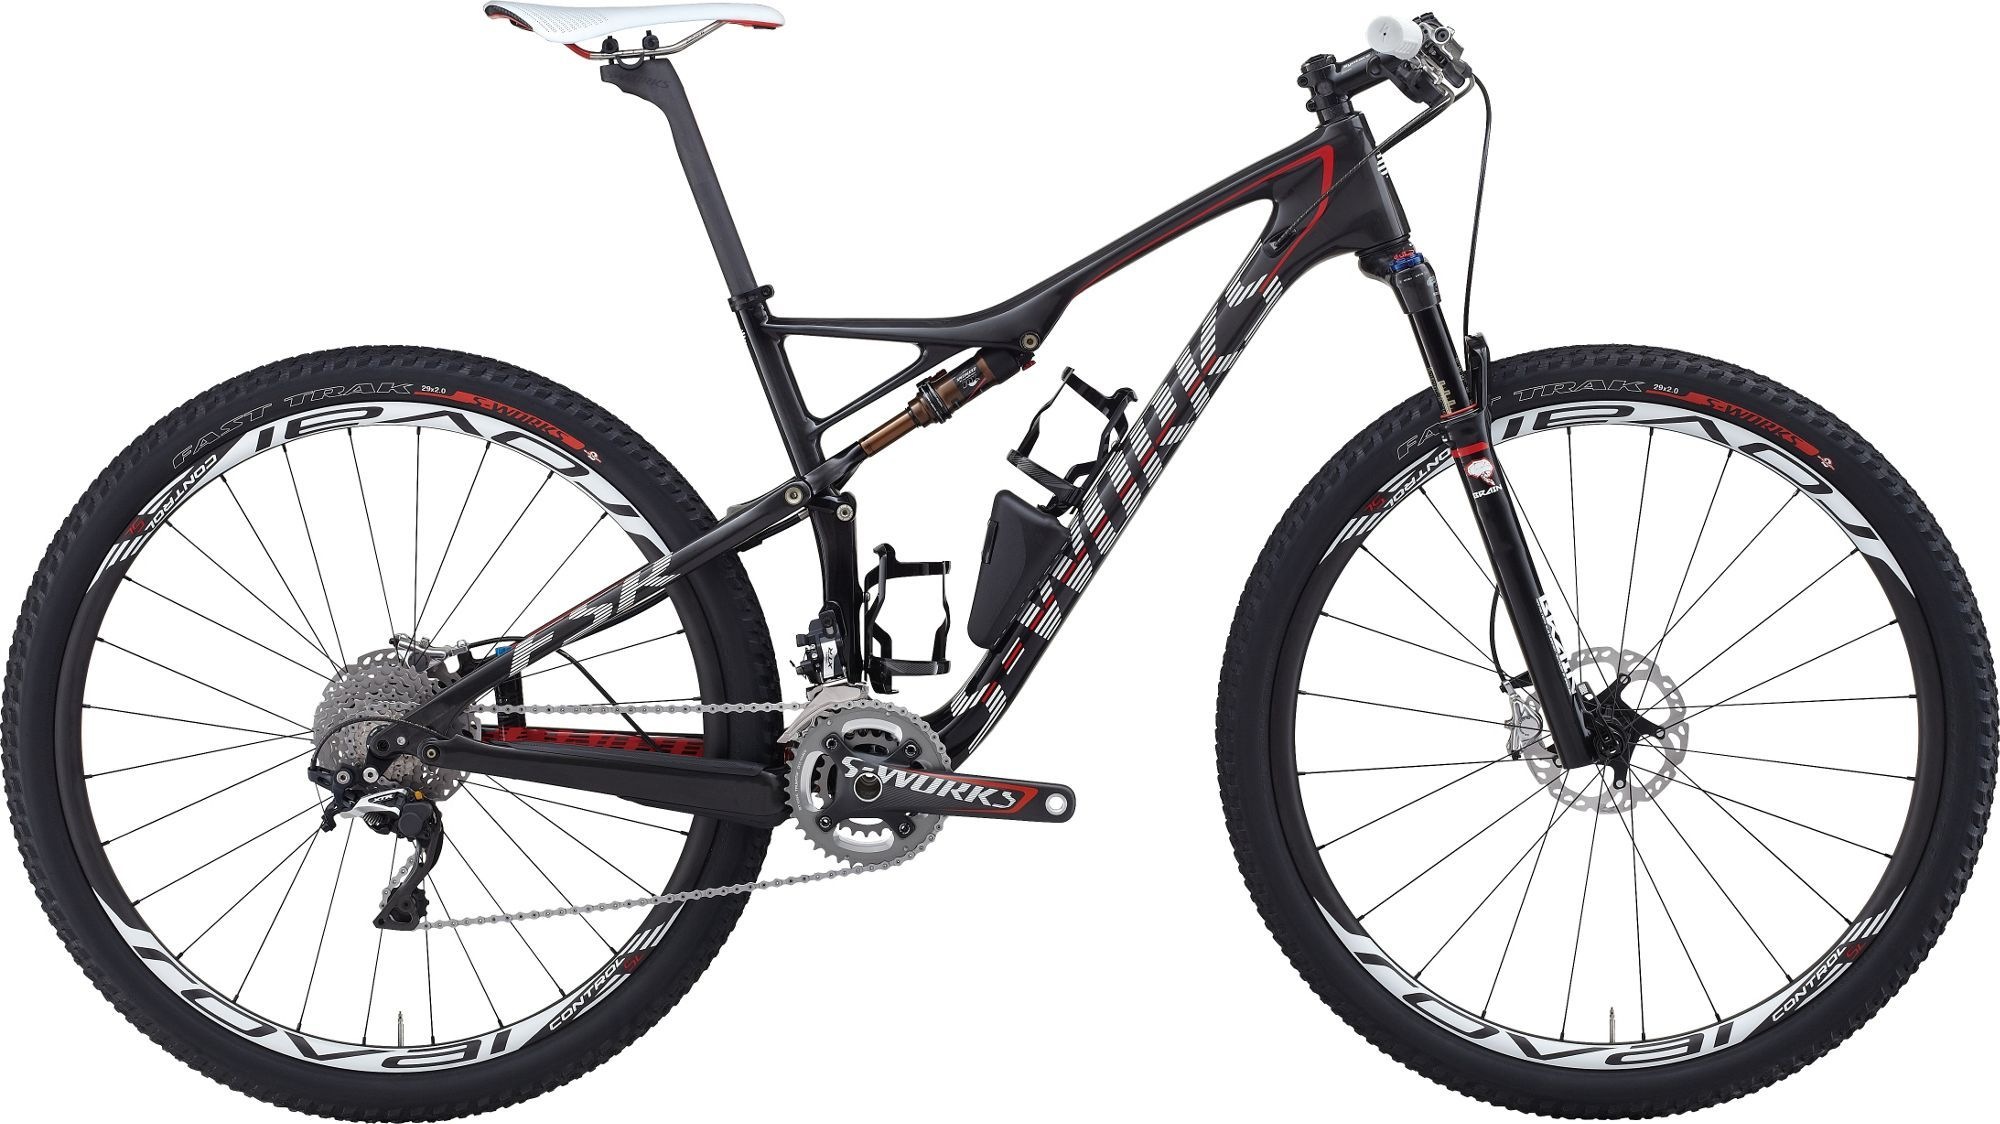 Specialized S-Works Epic Carbon 2014 review - The Bike List